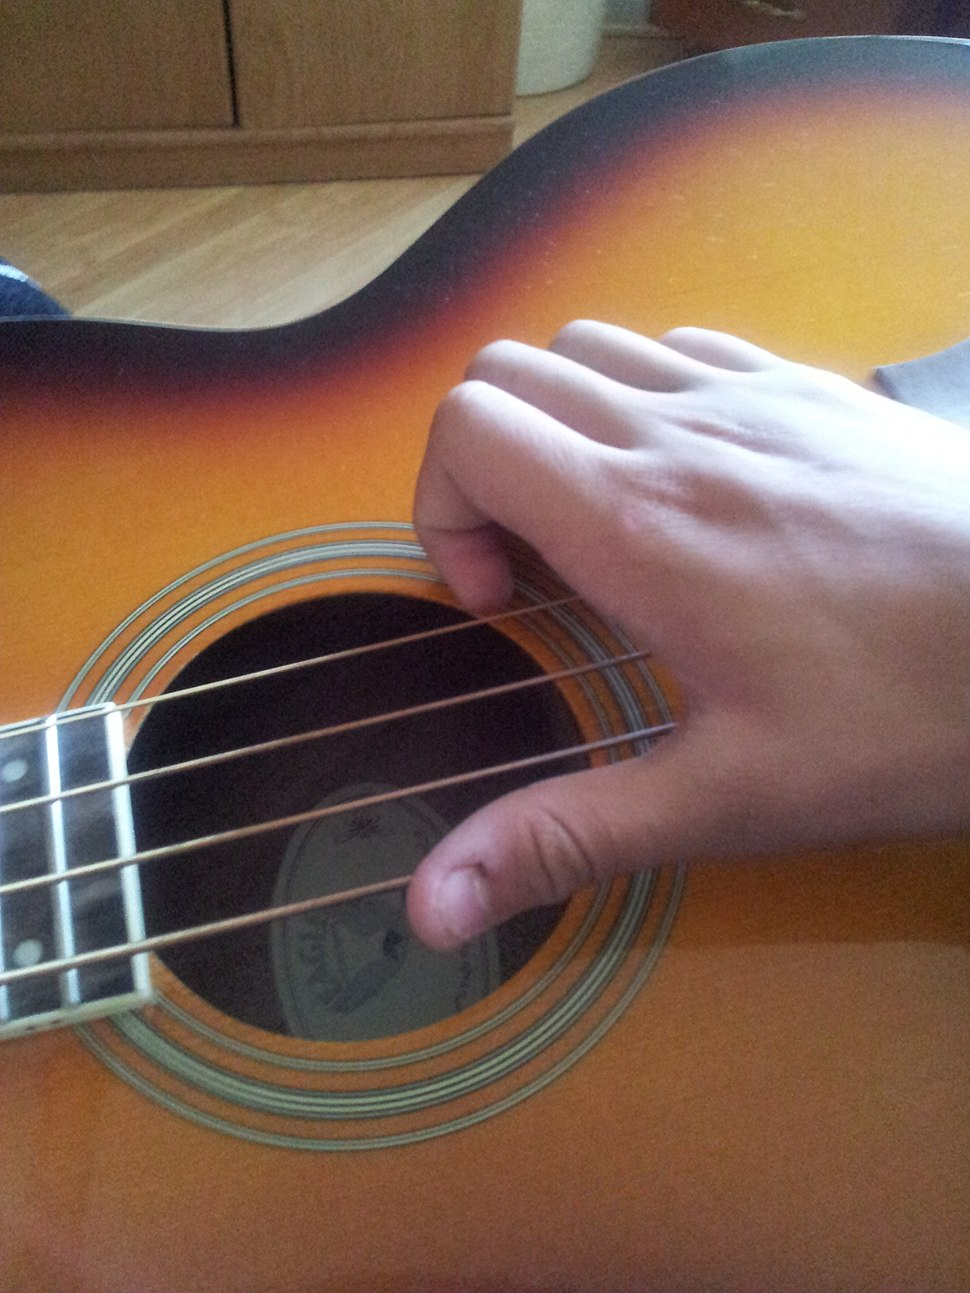 Typical form of a slapping hand in a bass